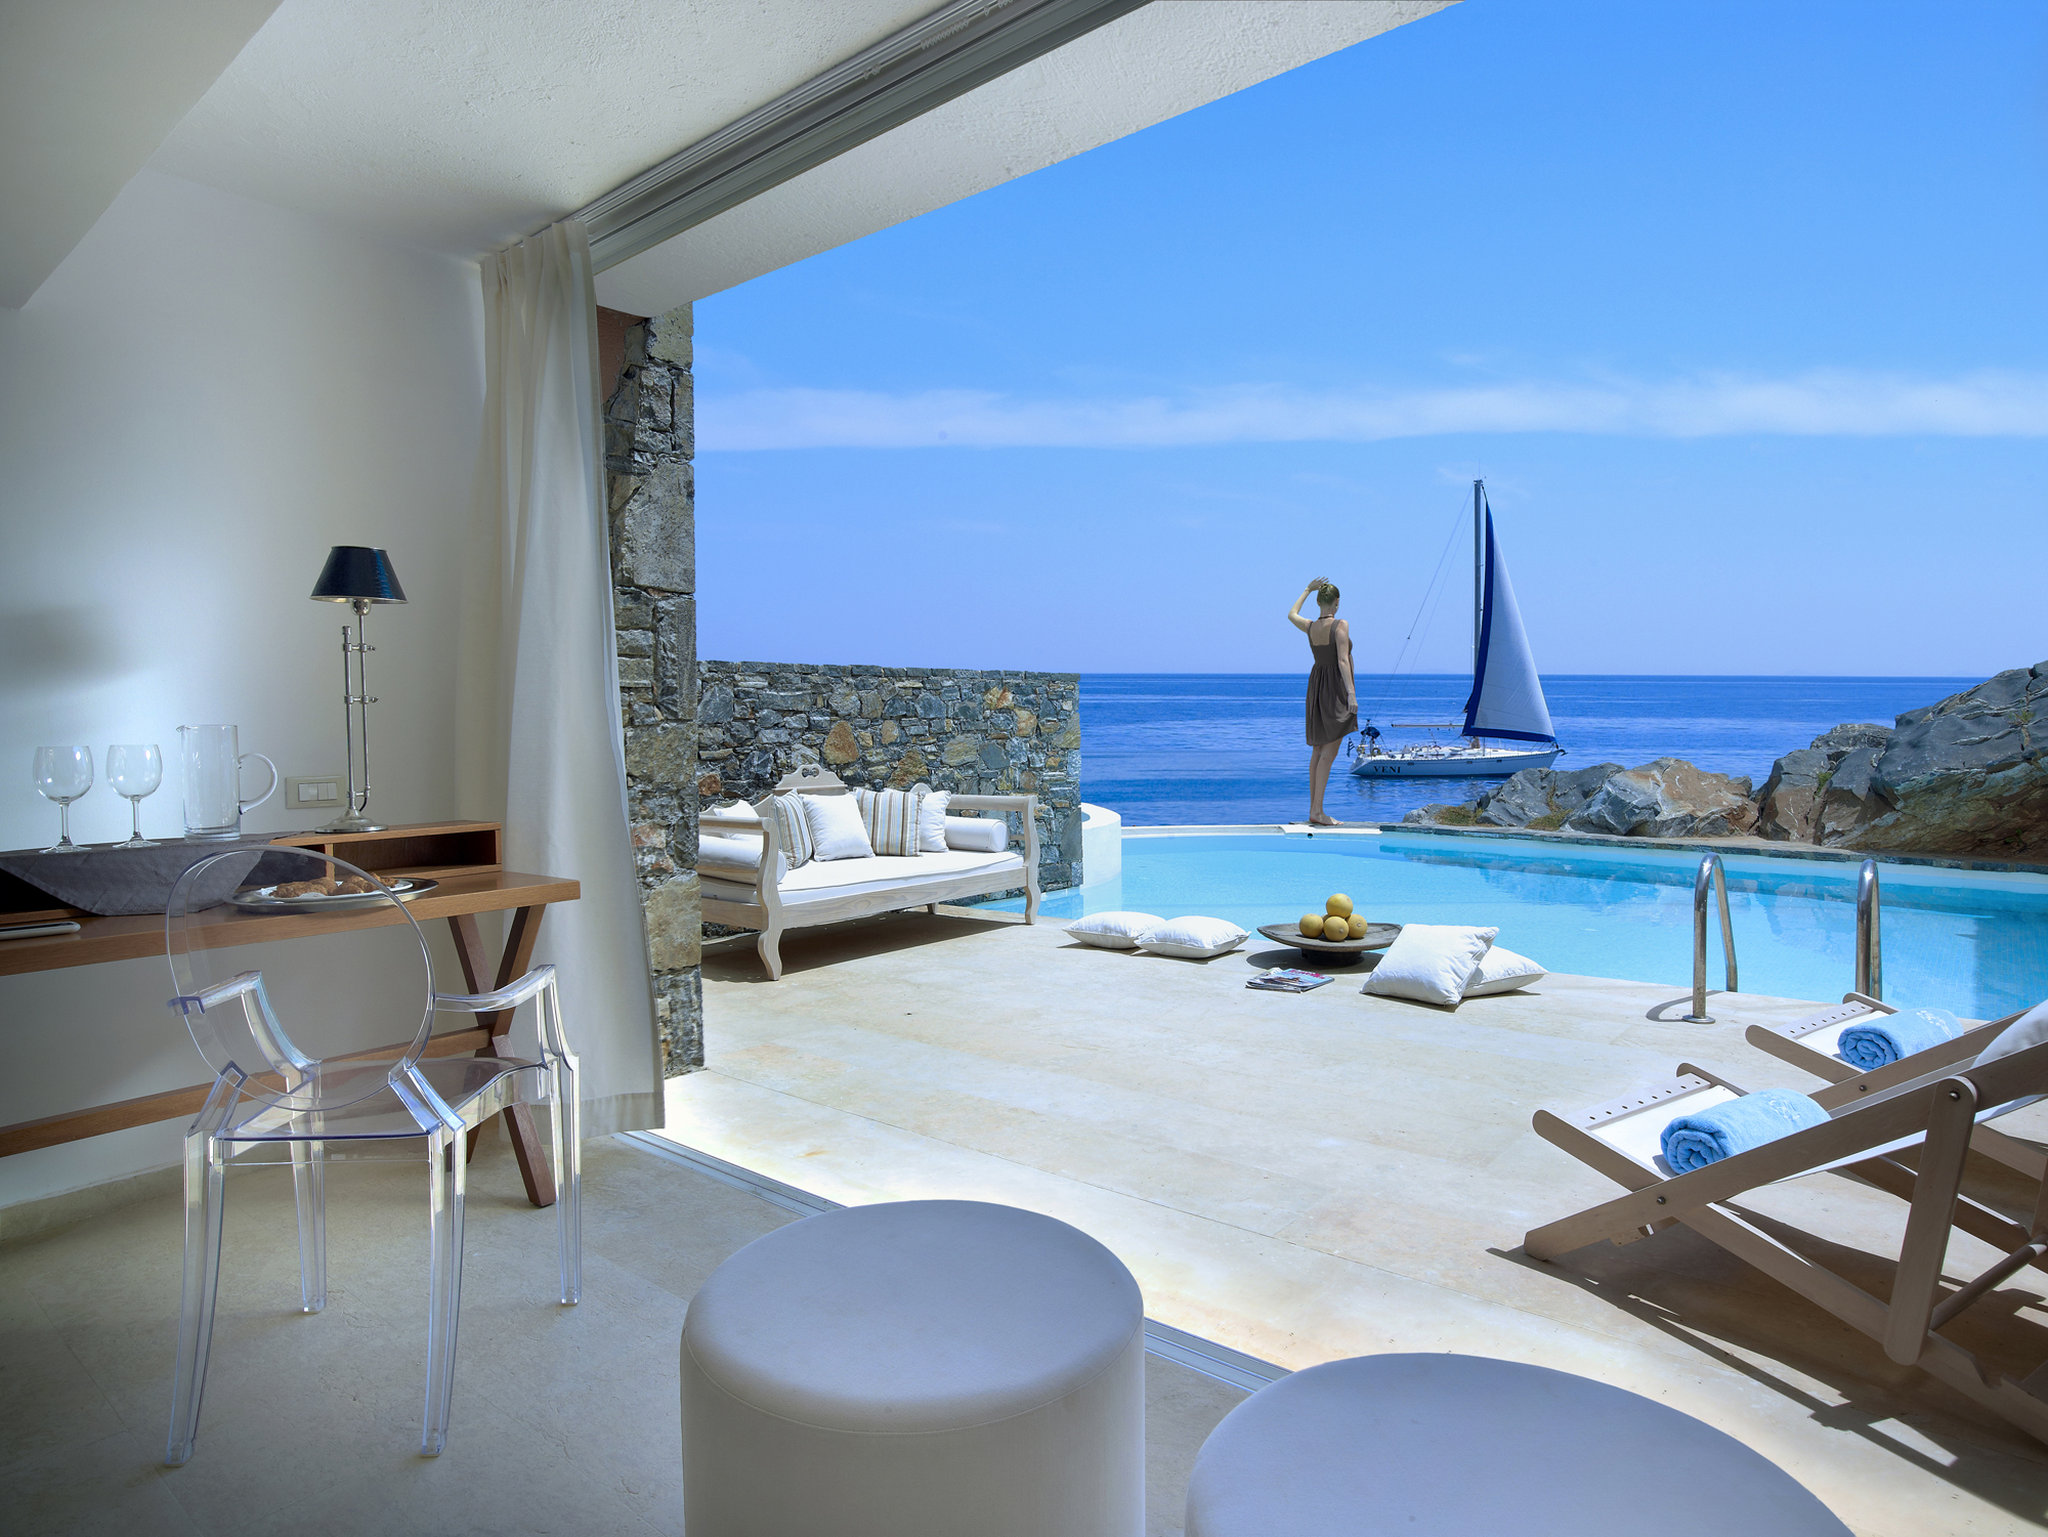 Small luxury hotels in the world the best for this season for Exclusive luxury accommodation